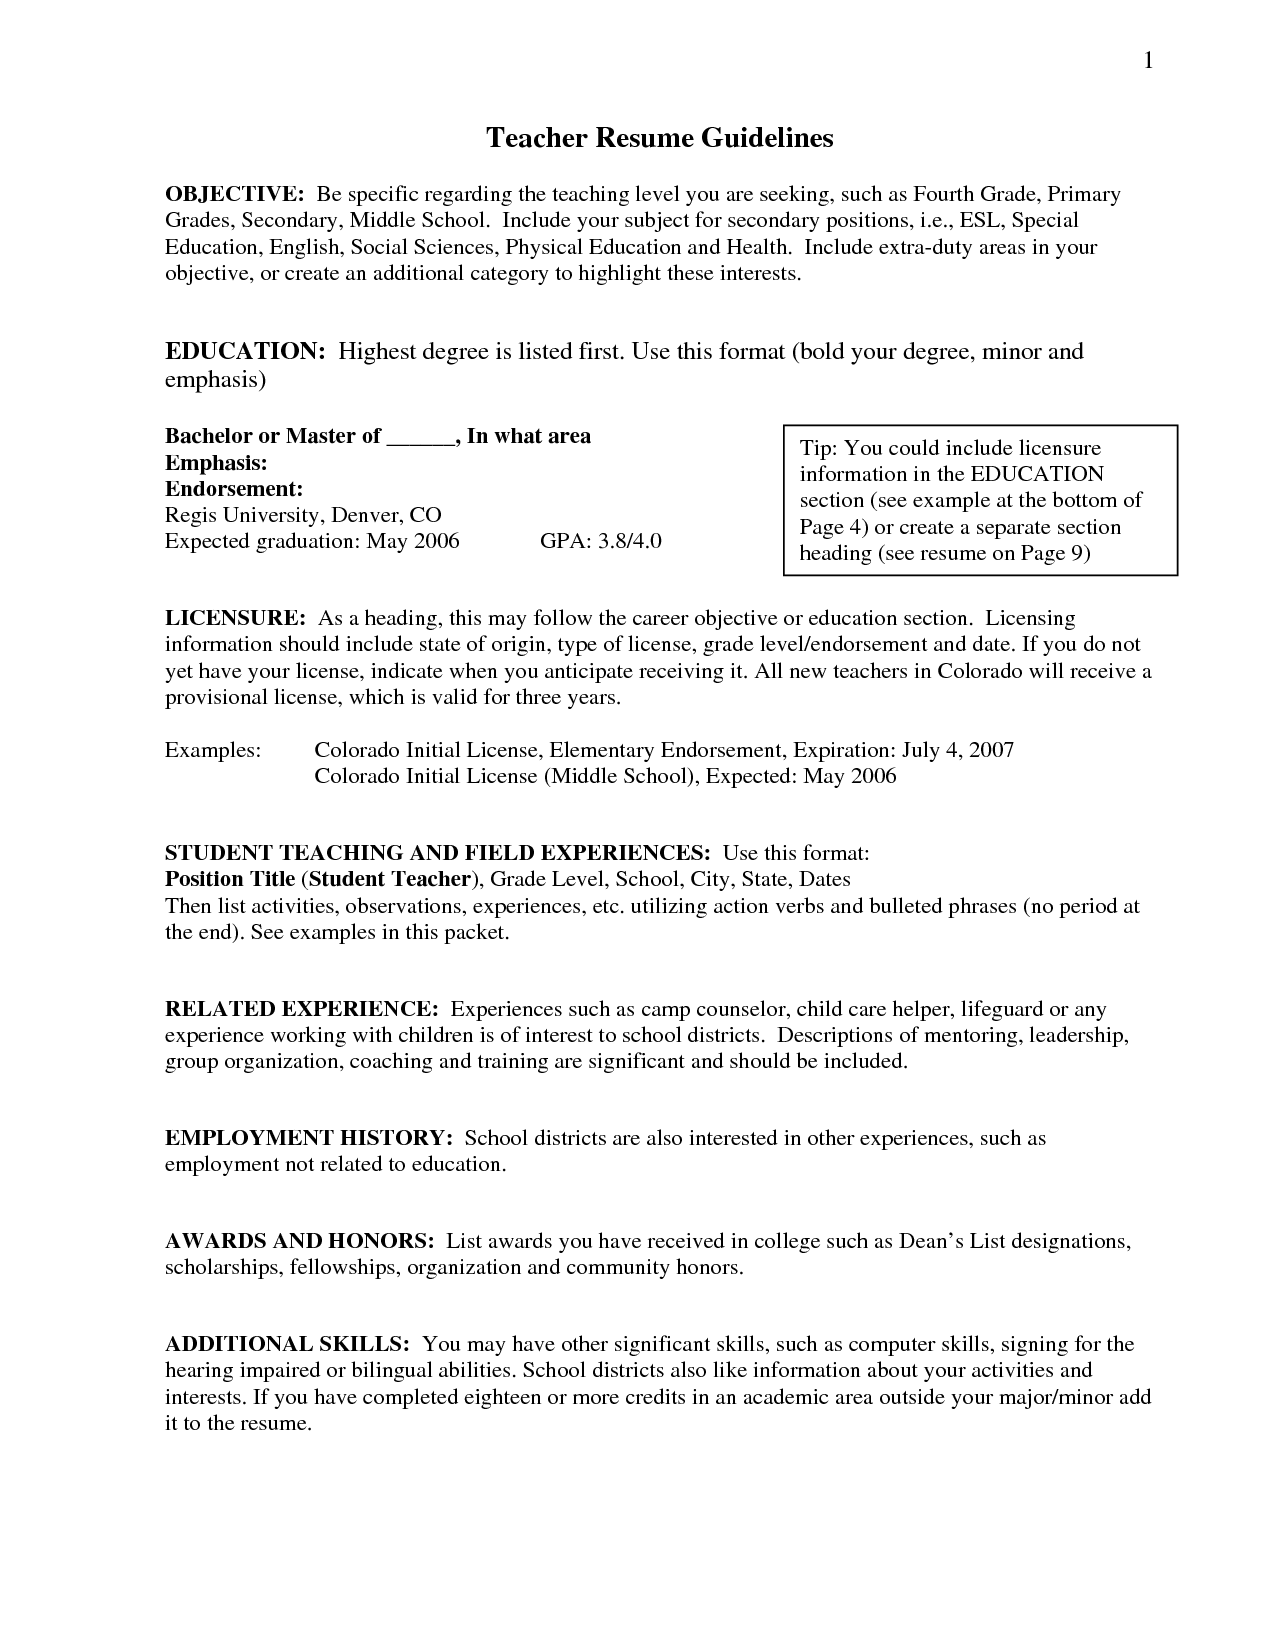 Resume Objective Statement For Teacher   Http://www.resumecareer.info/  Objective Statements Resume